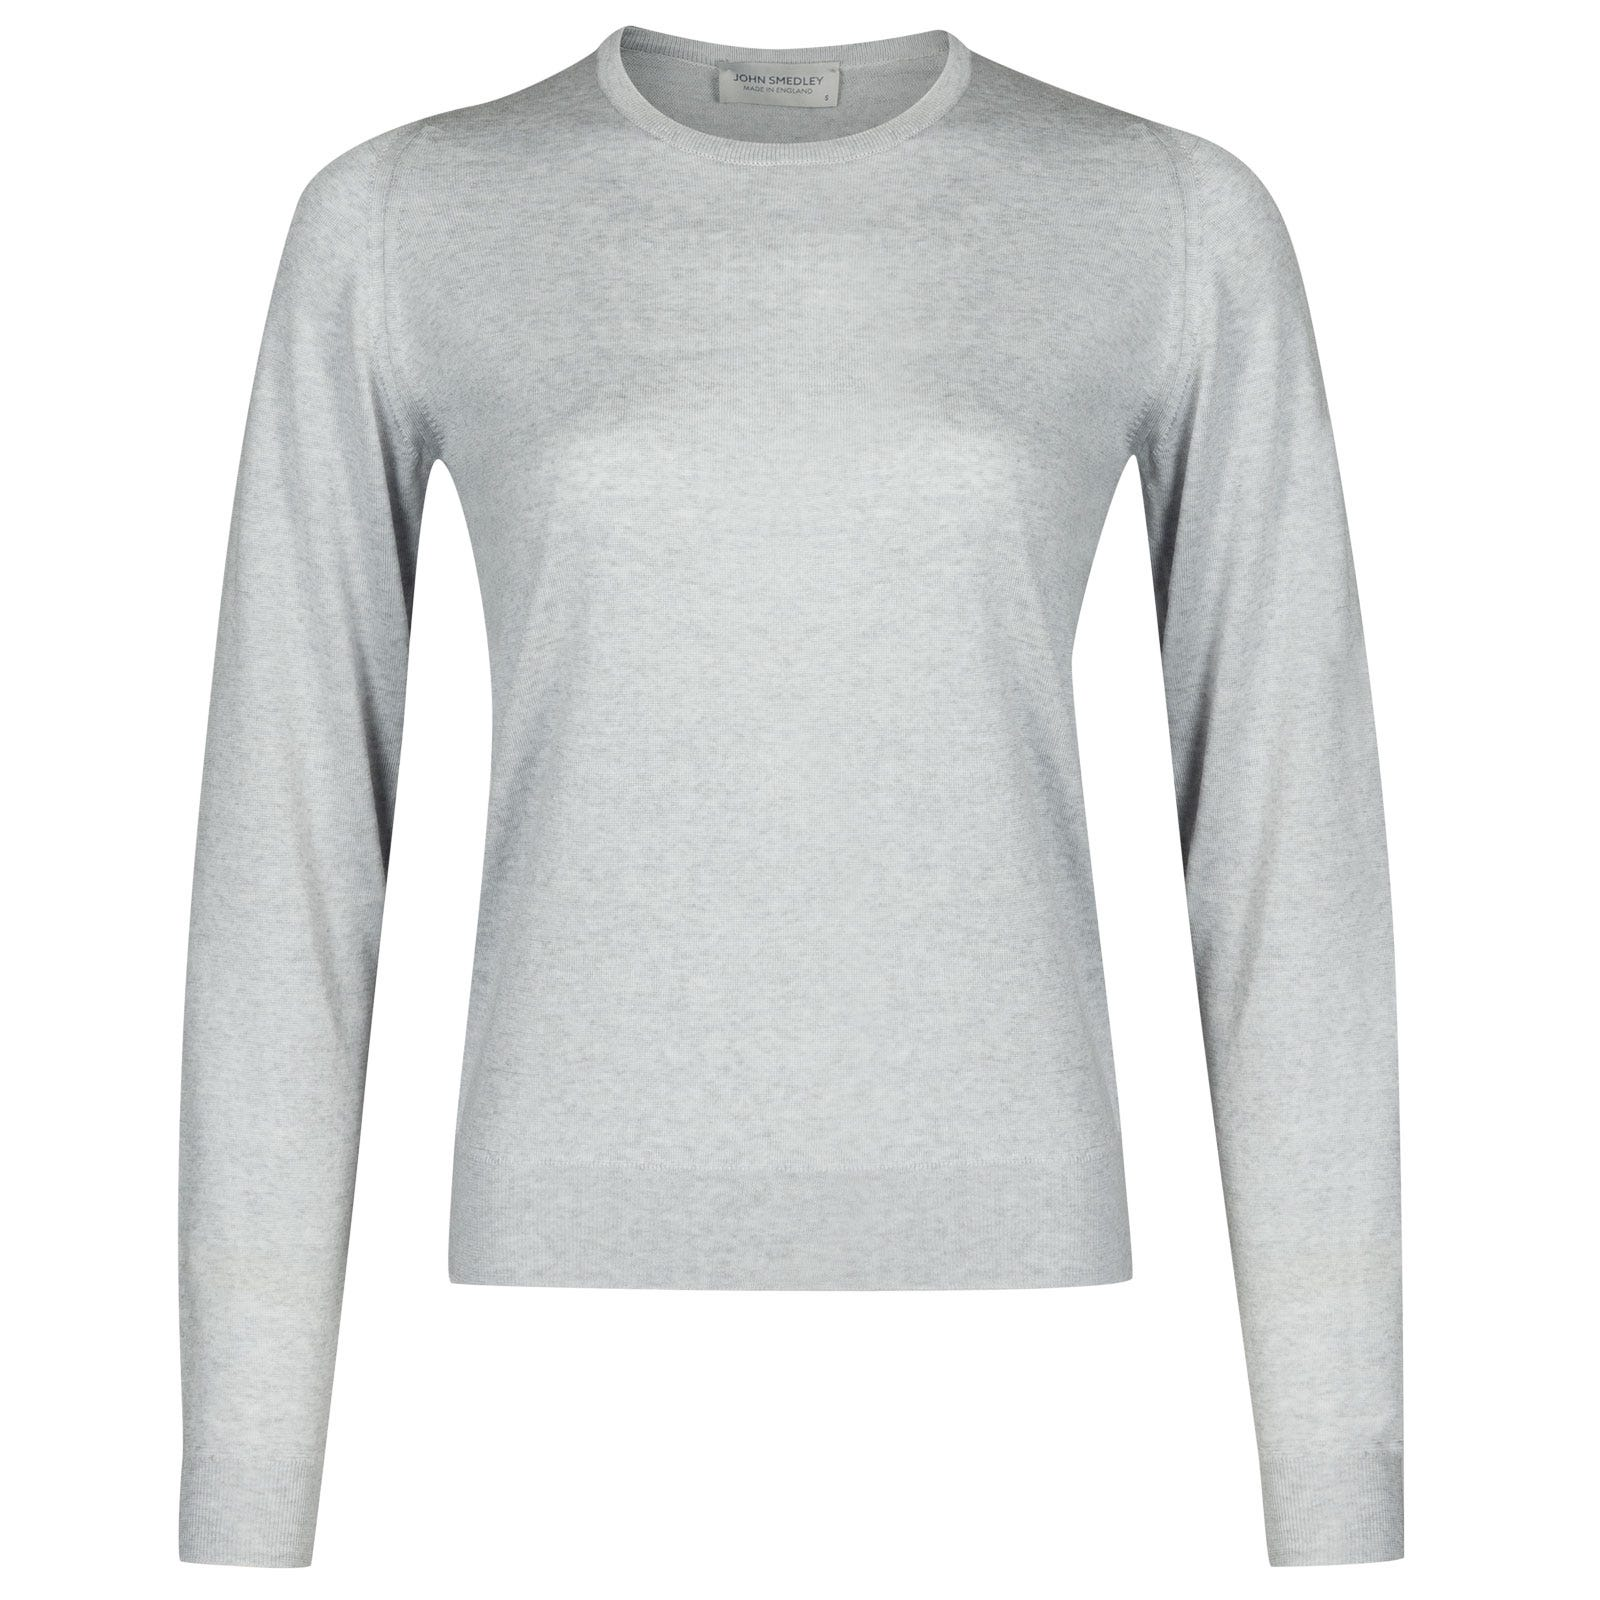 John Smedley venice Merino Wool Sweater in Bardot Grey-M